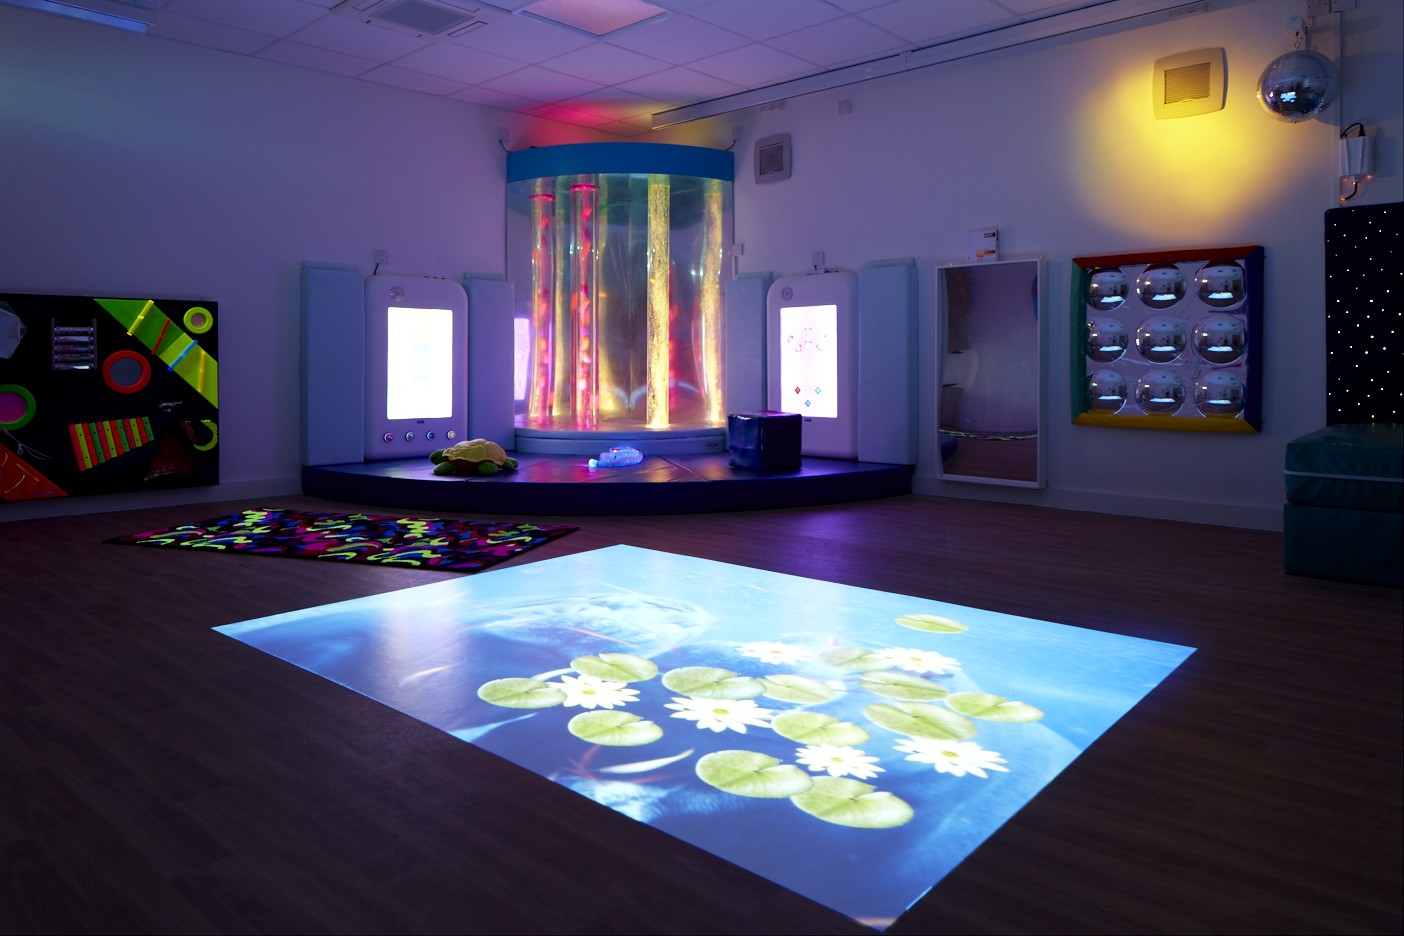 sensory pictures for classroom and therapy use - HD1404×936